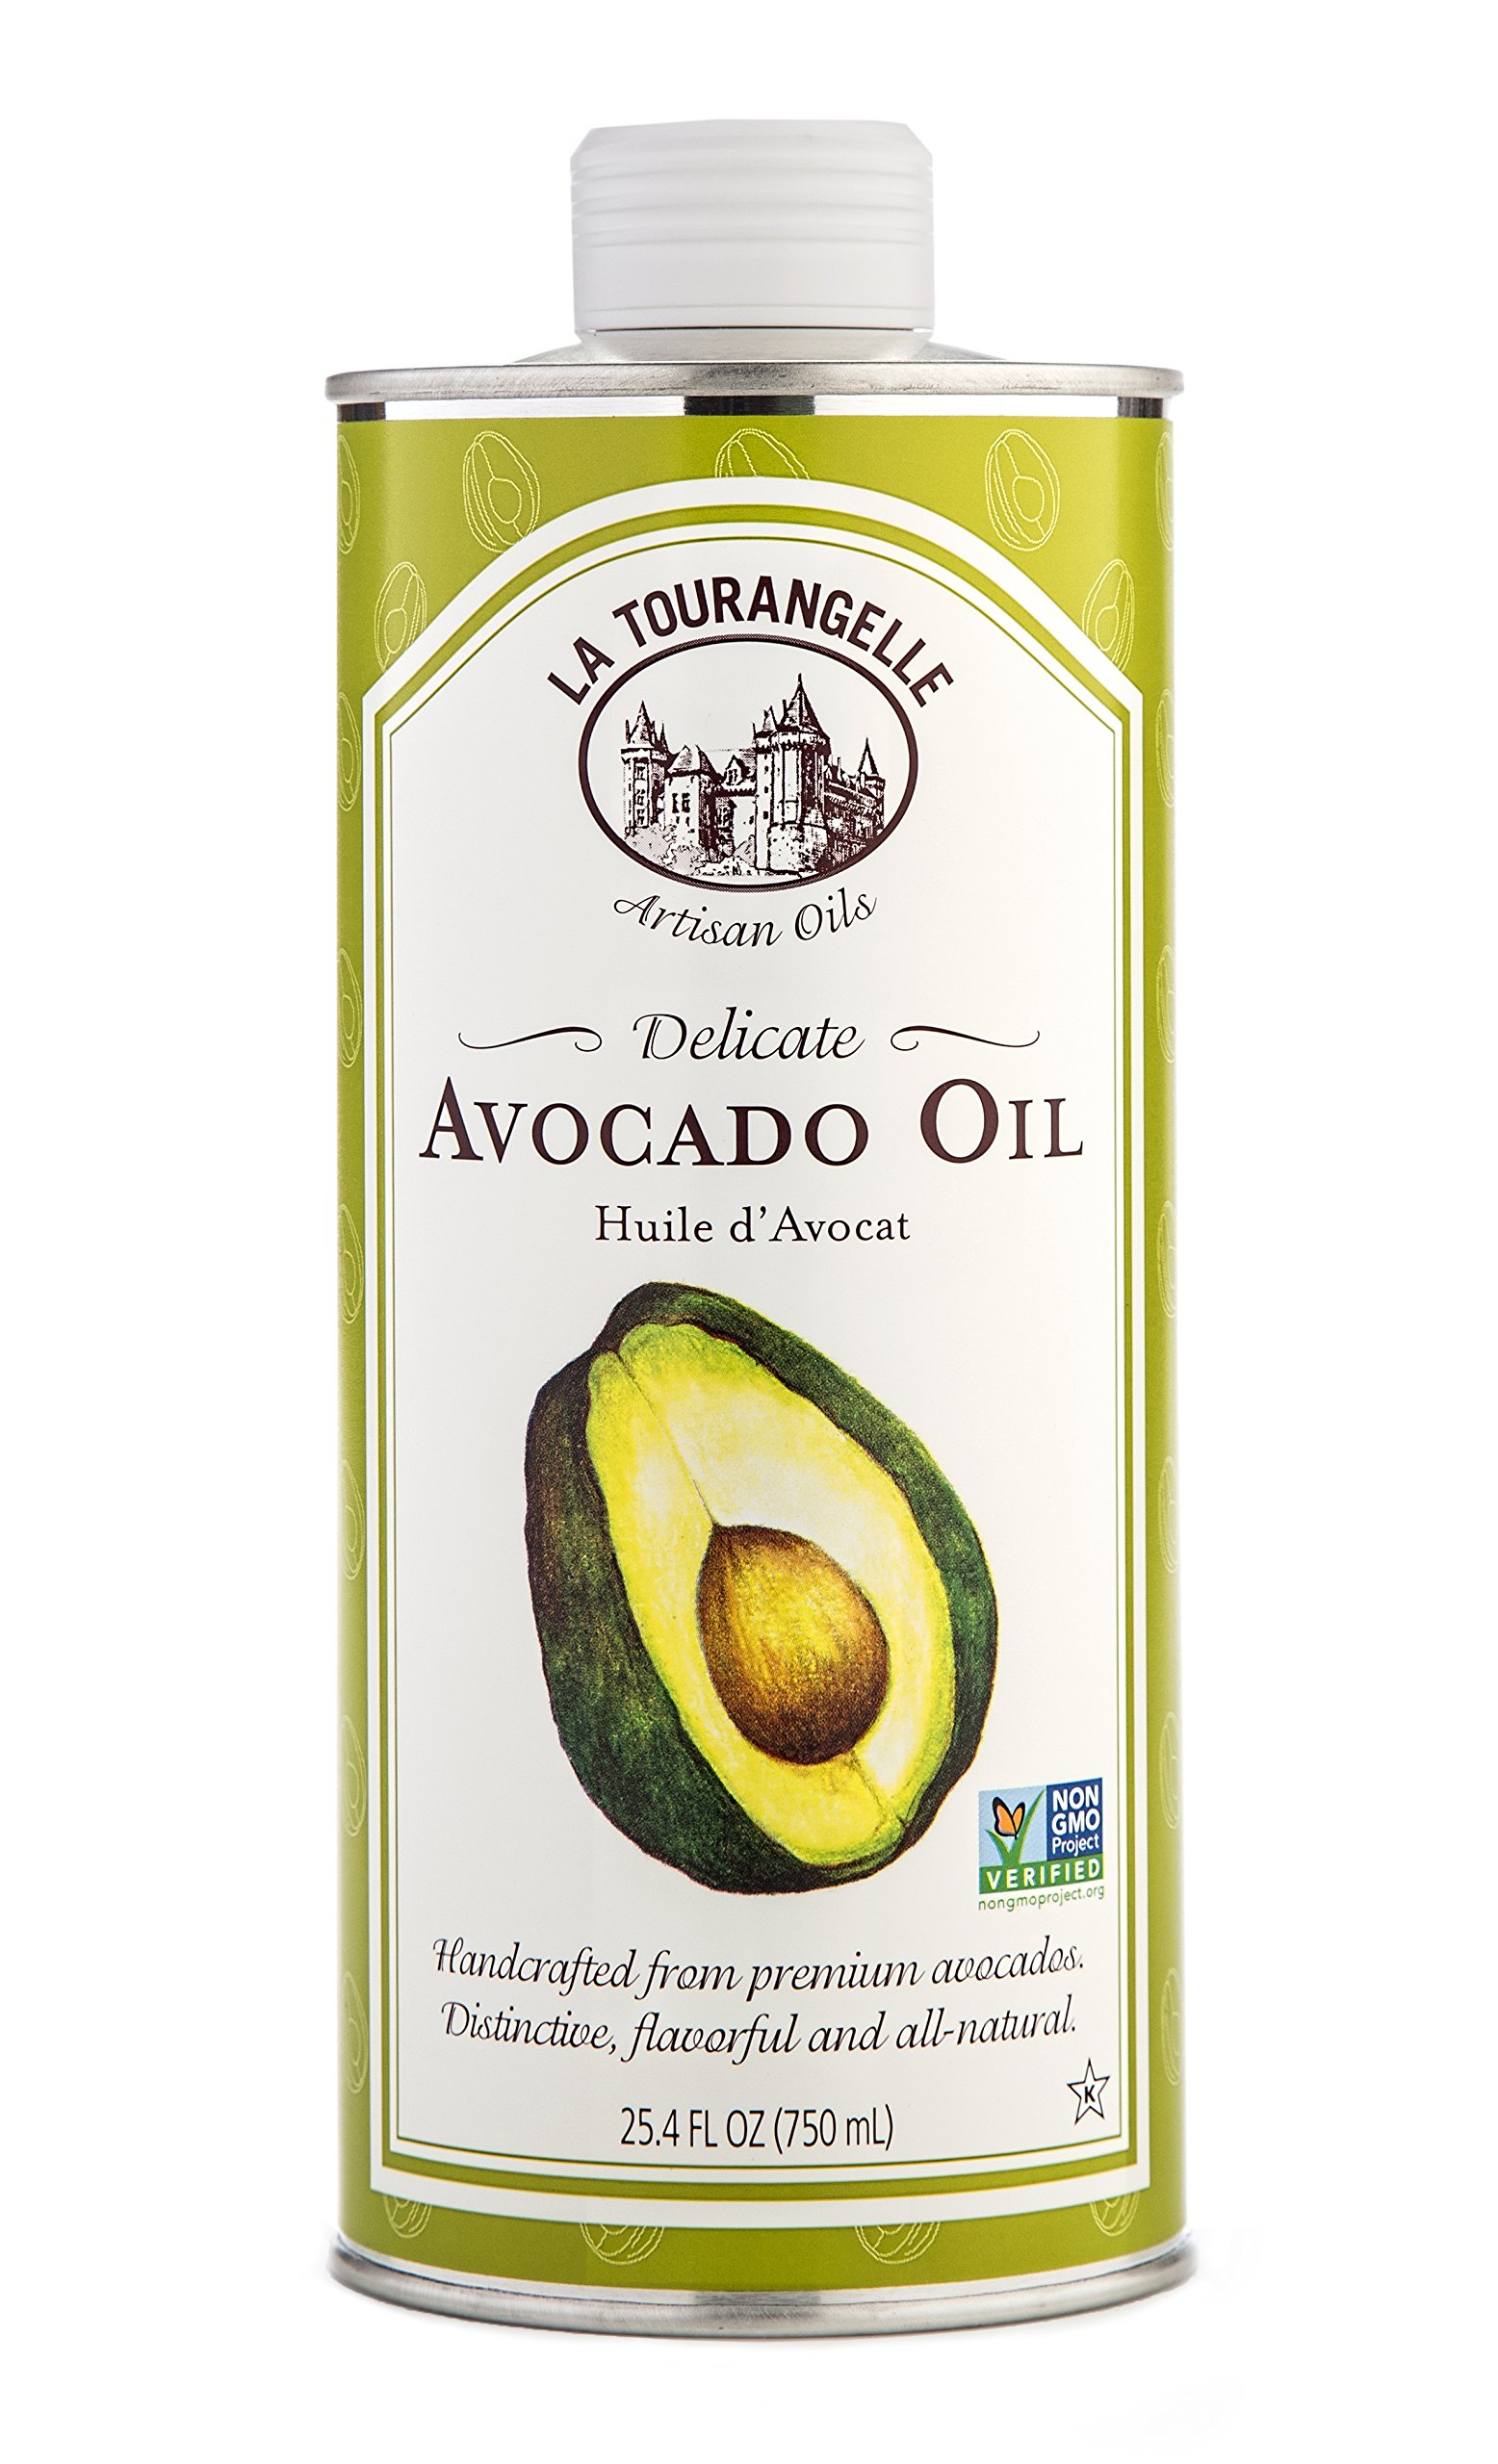 La Tourangelle Avocado Oil 25.4 Fl. Oz., All-Natural, Artisanal, Great for Salads, Fruit, Fish or Vegetables, Great Buttery Flavor